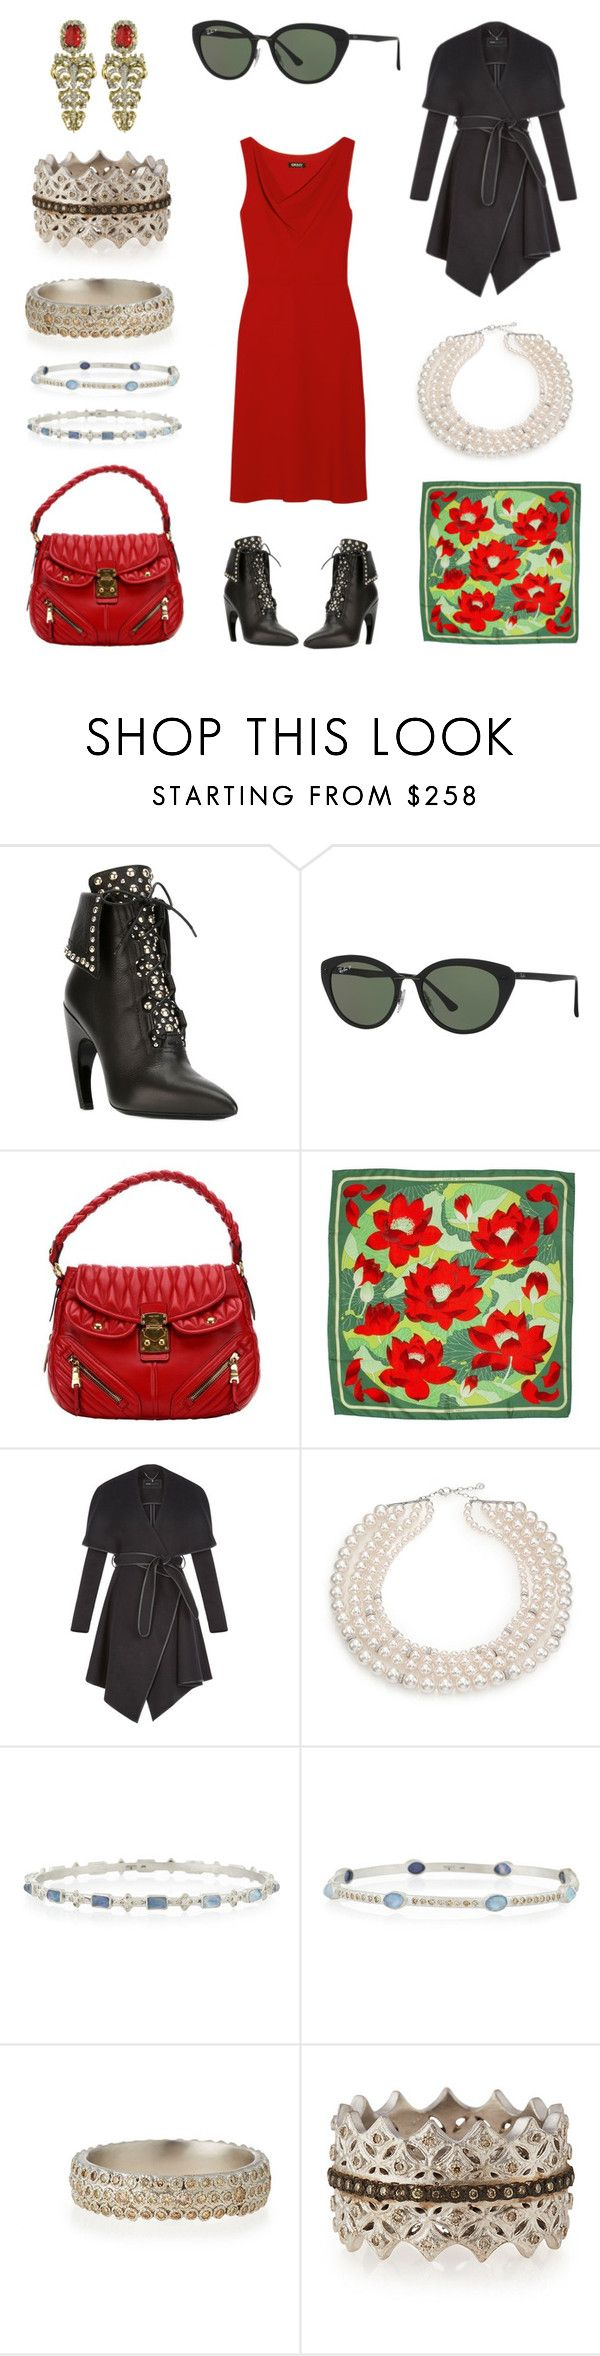 """""""Valencia, Spain"""" by creation-gallery on Polyvore featuring Massimo Dutti, Givenchy, Ray-Ban, Miu Miu, Hermès, BCBGeneration, Majorica, Armenta, Roberto Cavalli and women's clothing"""